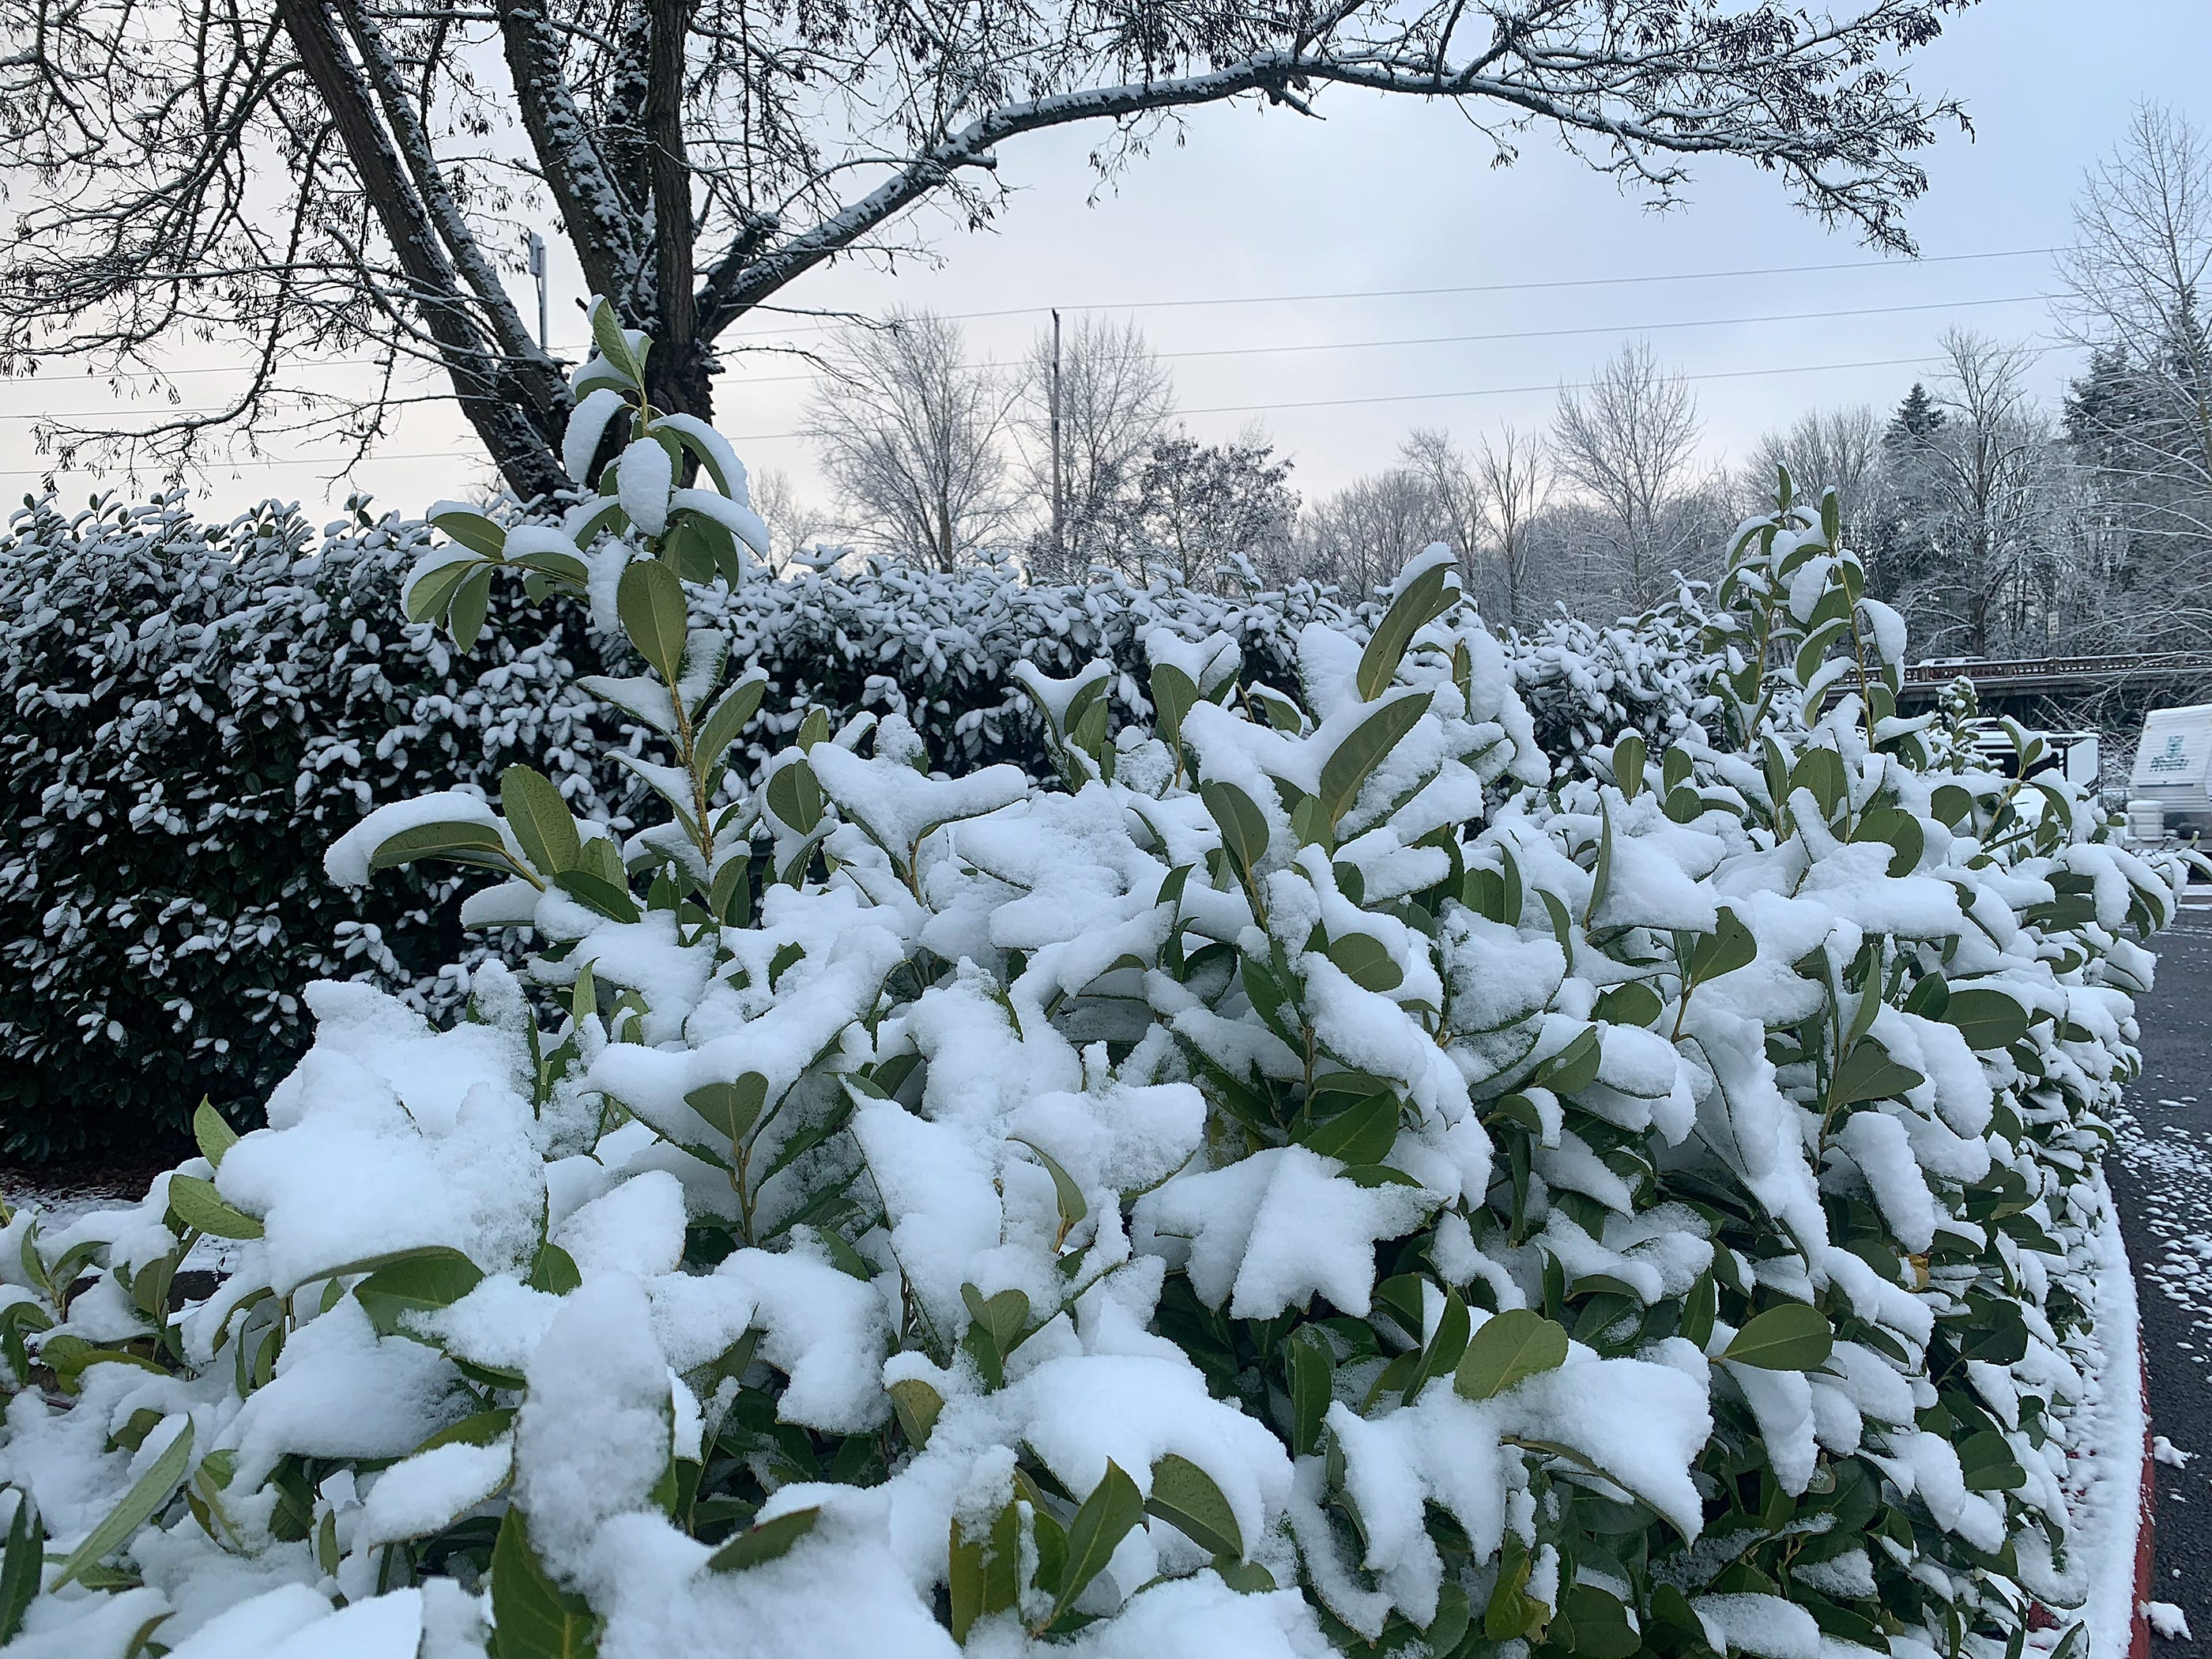 Snow covers much of the mid-Willamette valley Tuesday morning. Snow covered cars, trees and yard ornaments greeted residents of Canby, Oregon Tuesday February 5, 2019.